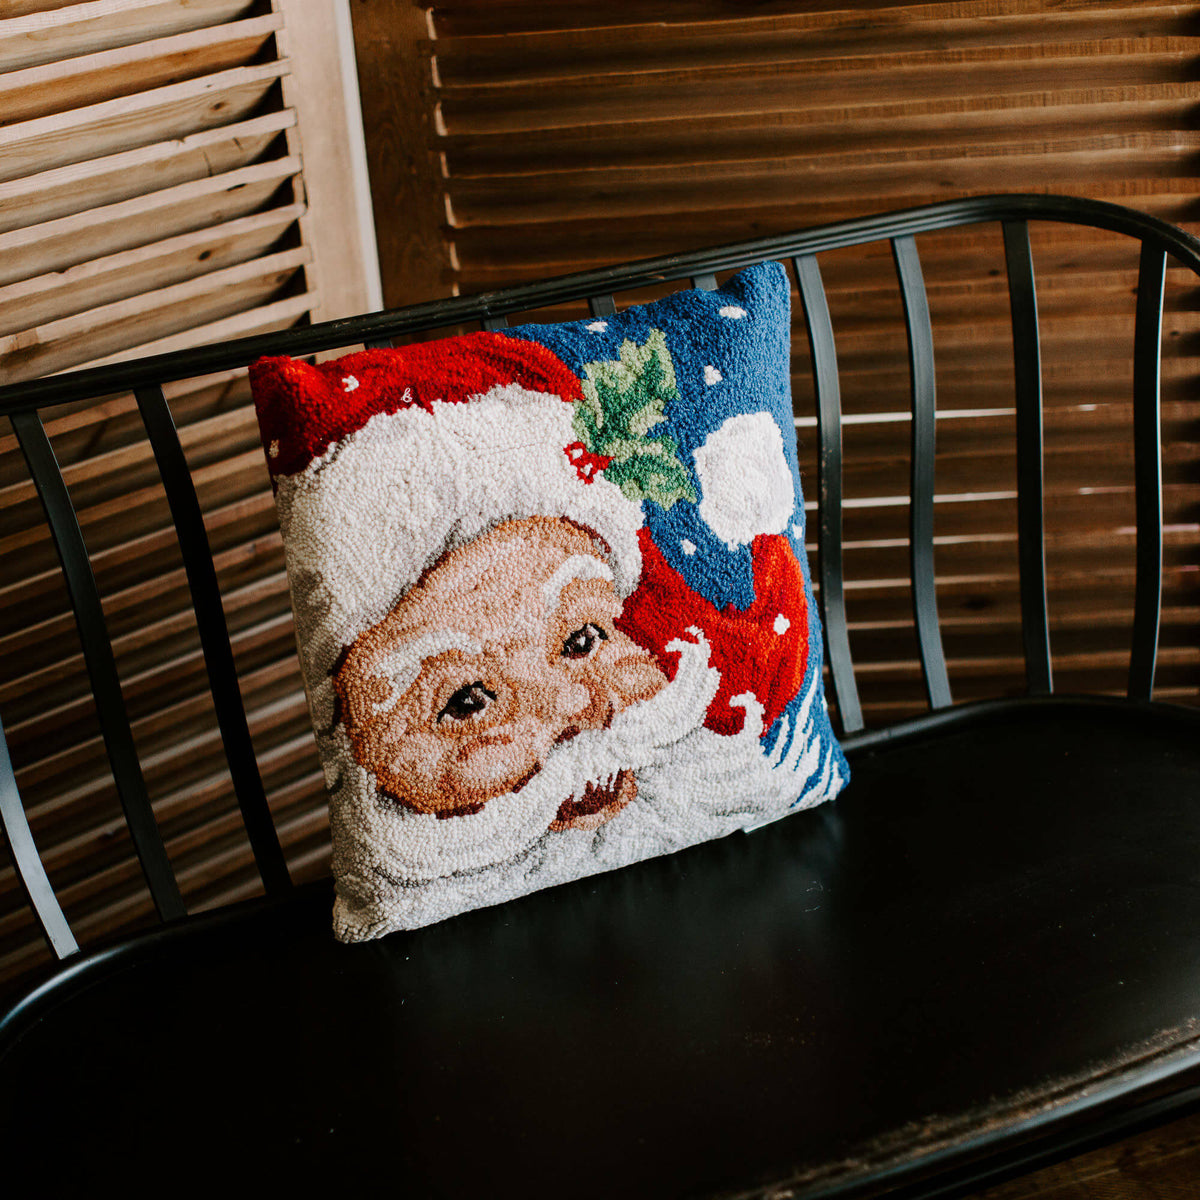 Vintage-looking Santa pillow with blue sky background, resting on a black bench